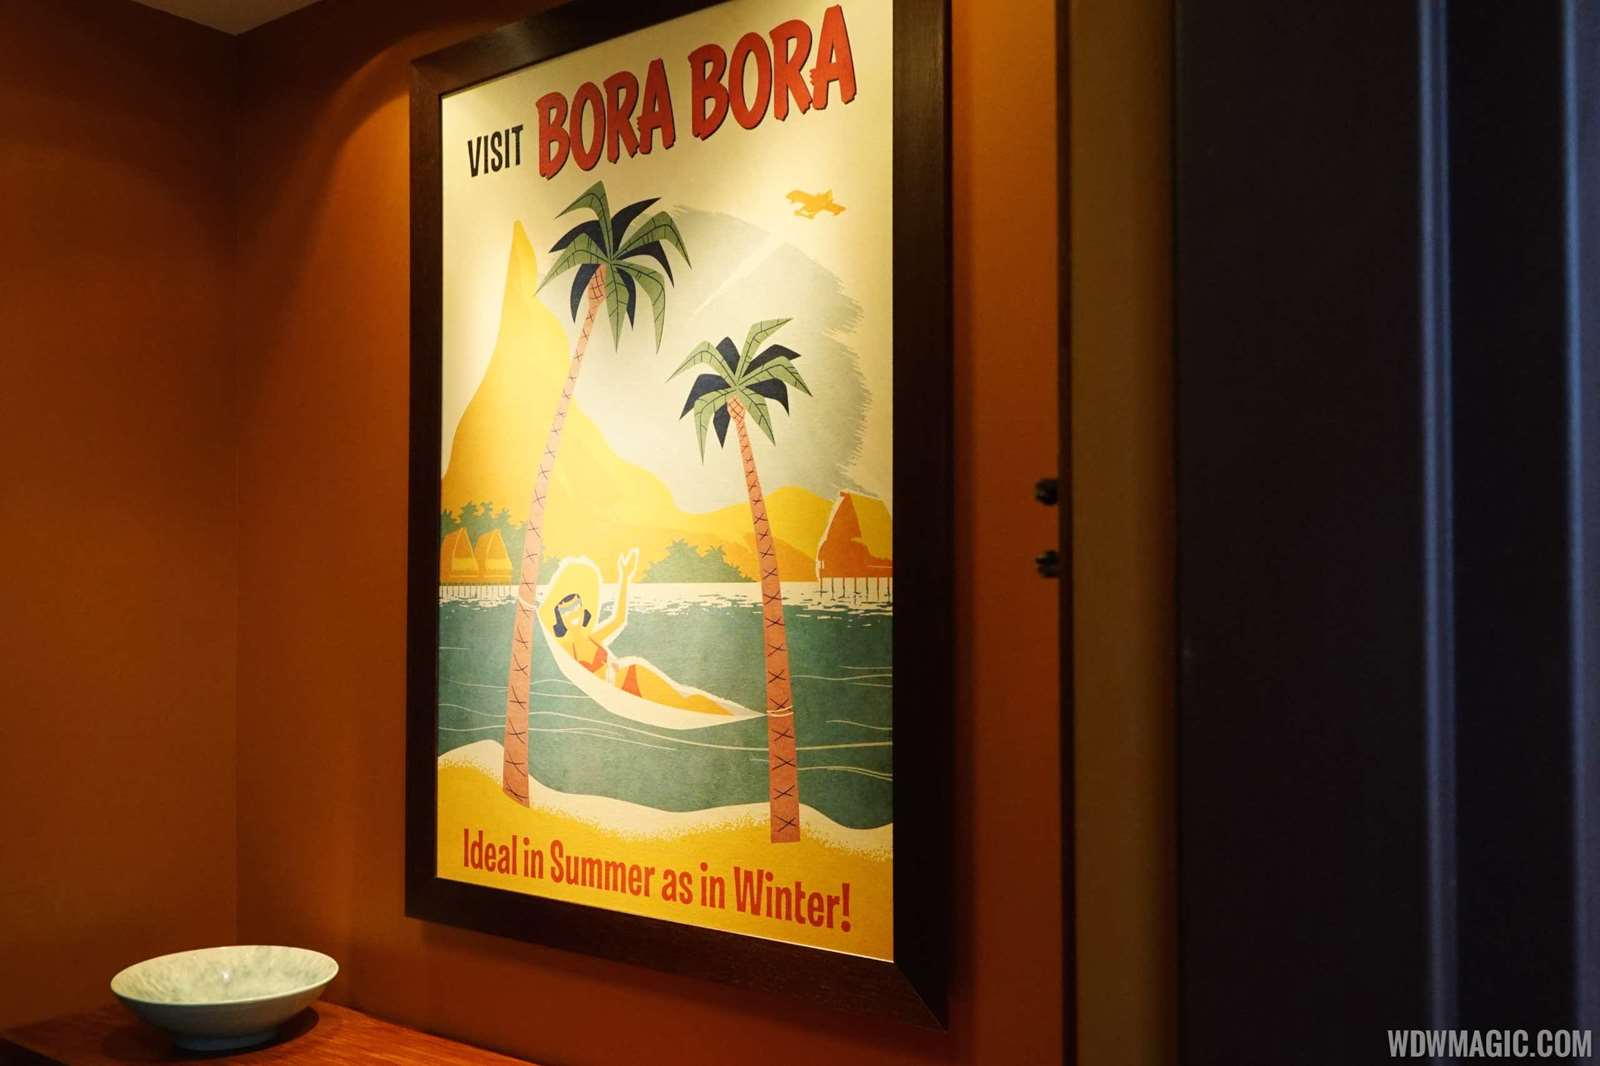 PHOTOS - Take a complete tour through a completed Bora Bora Bungalow ...